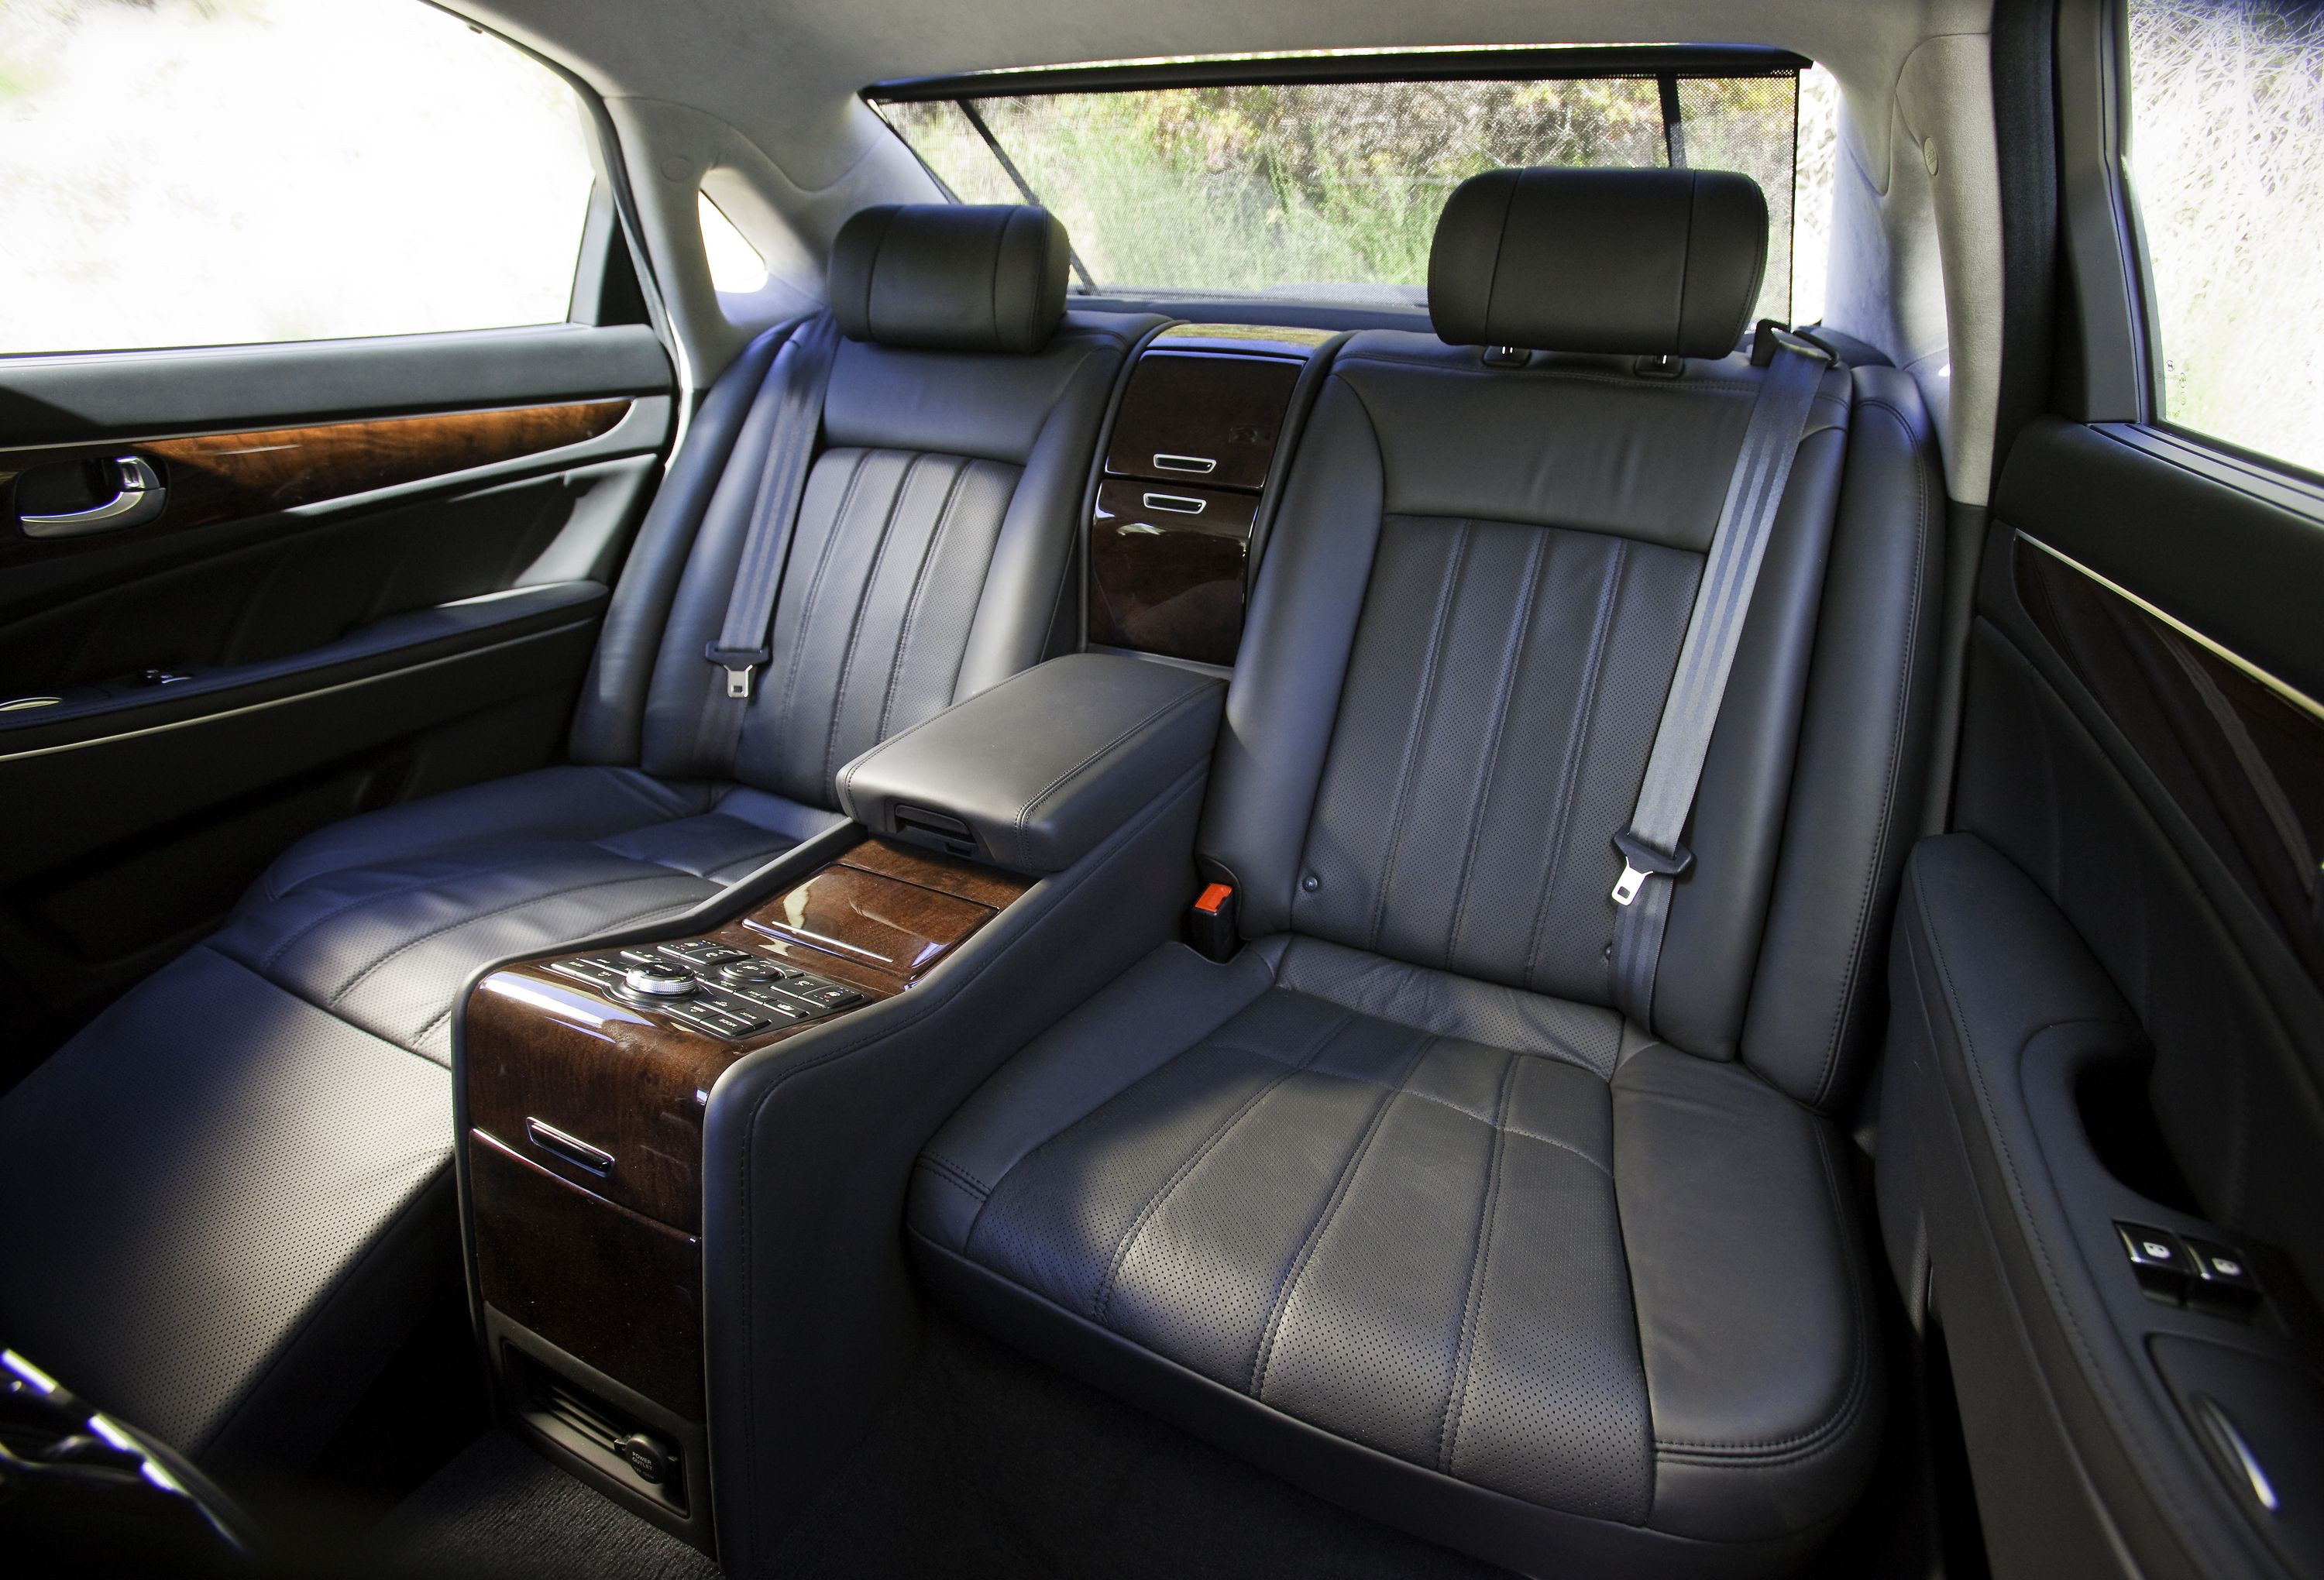 The Hyundai Equus Interior Backseats It Even Has Massage Rollers Hyundai Luxury Cars High End Cars